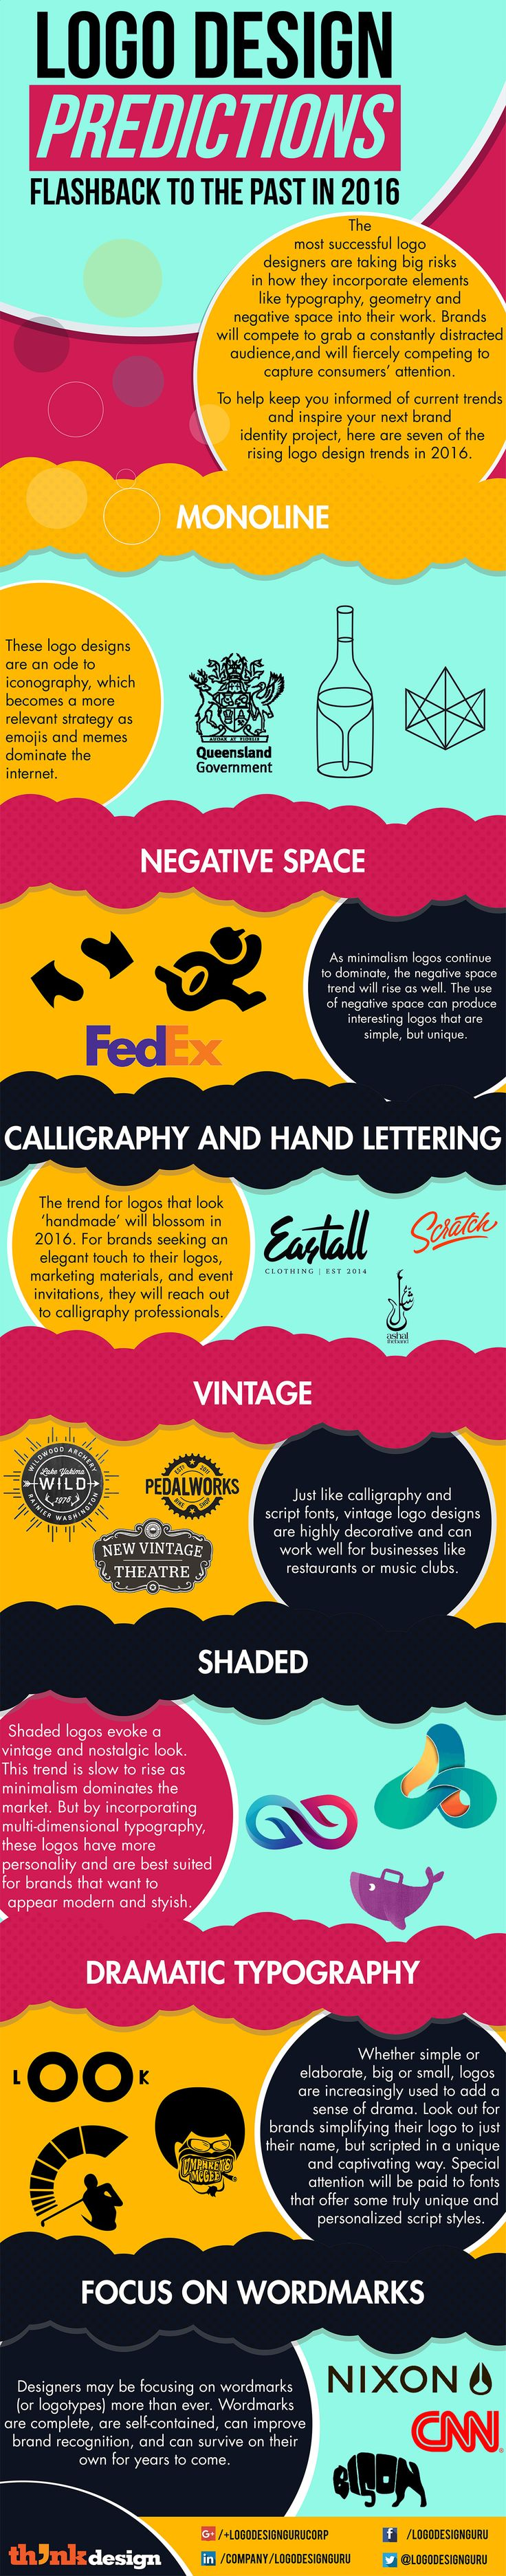 2016 Logo Design Trends and Predictions (Infographic) | iBrandStudio